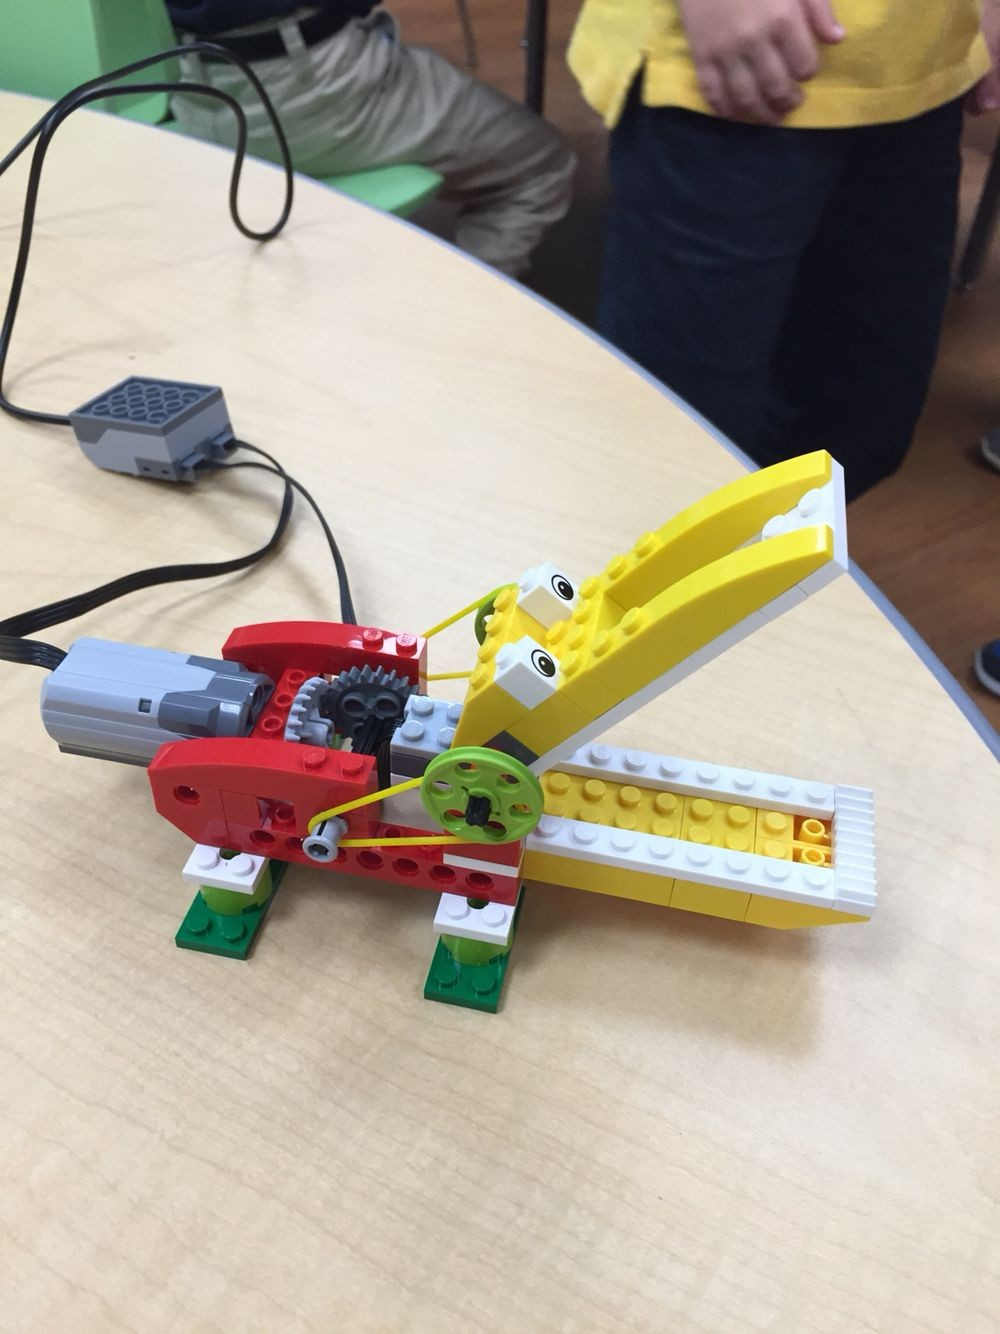 Students learn programming building function of mechanics and team building